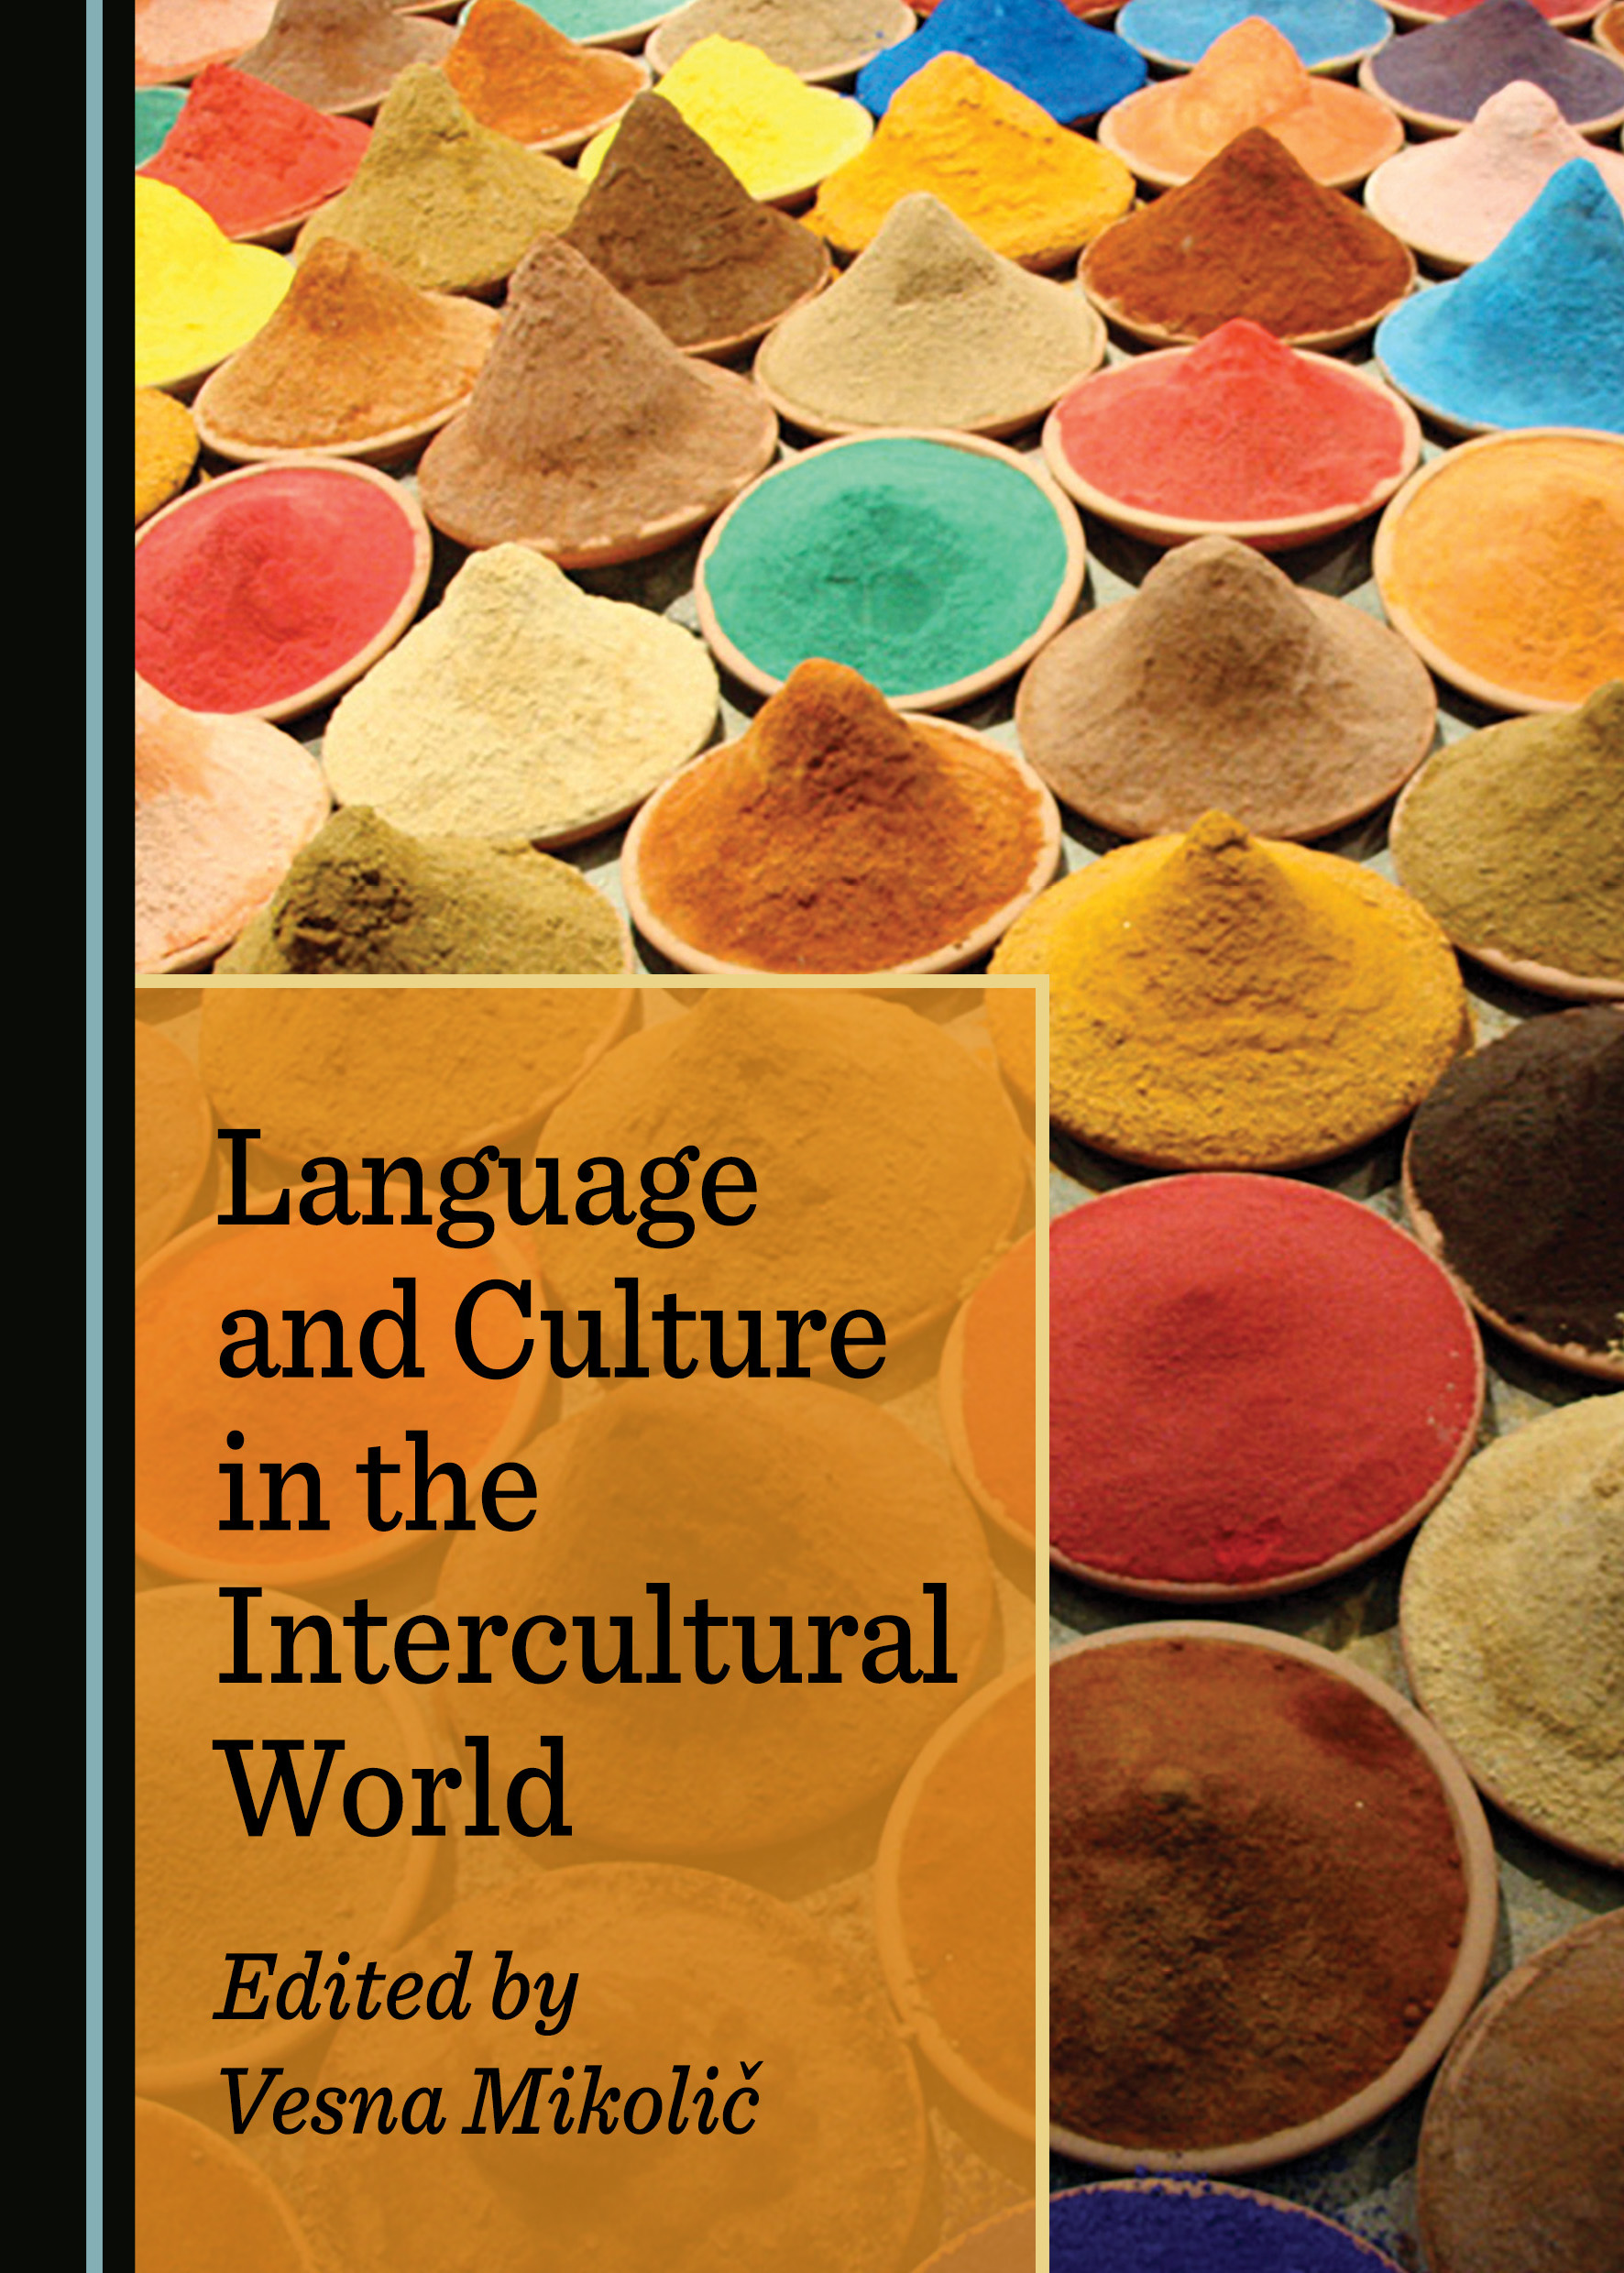 Language and Culture in the Intercultural World